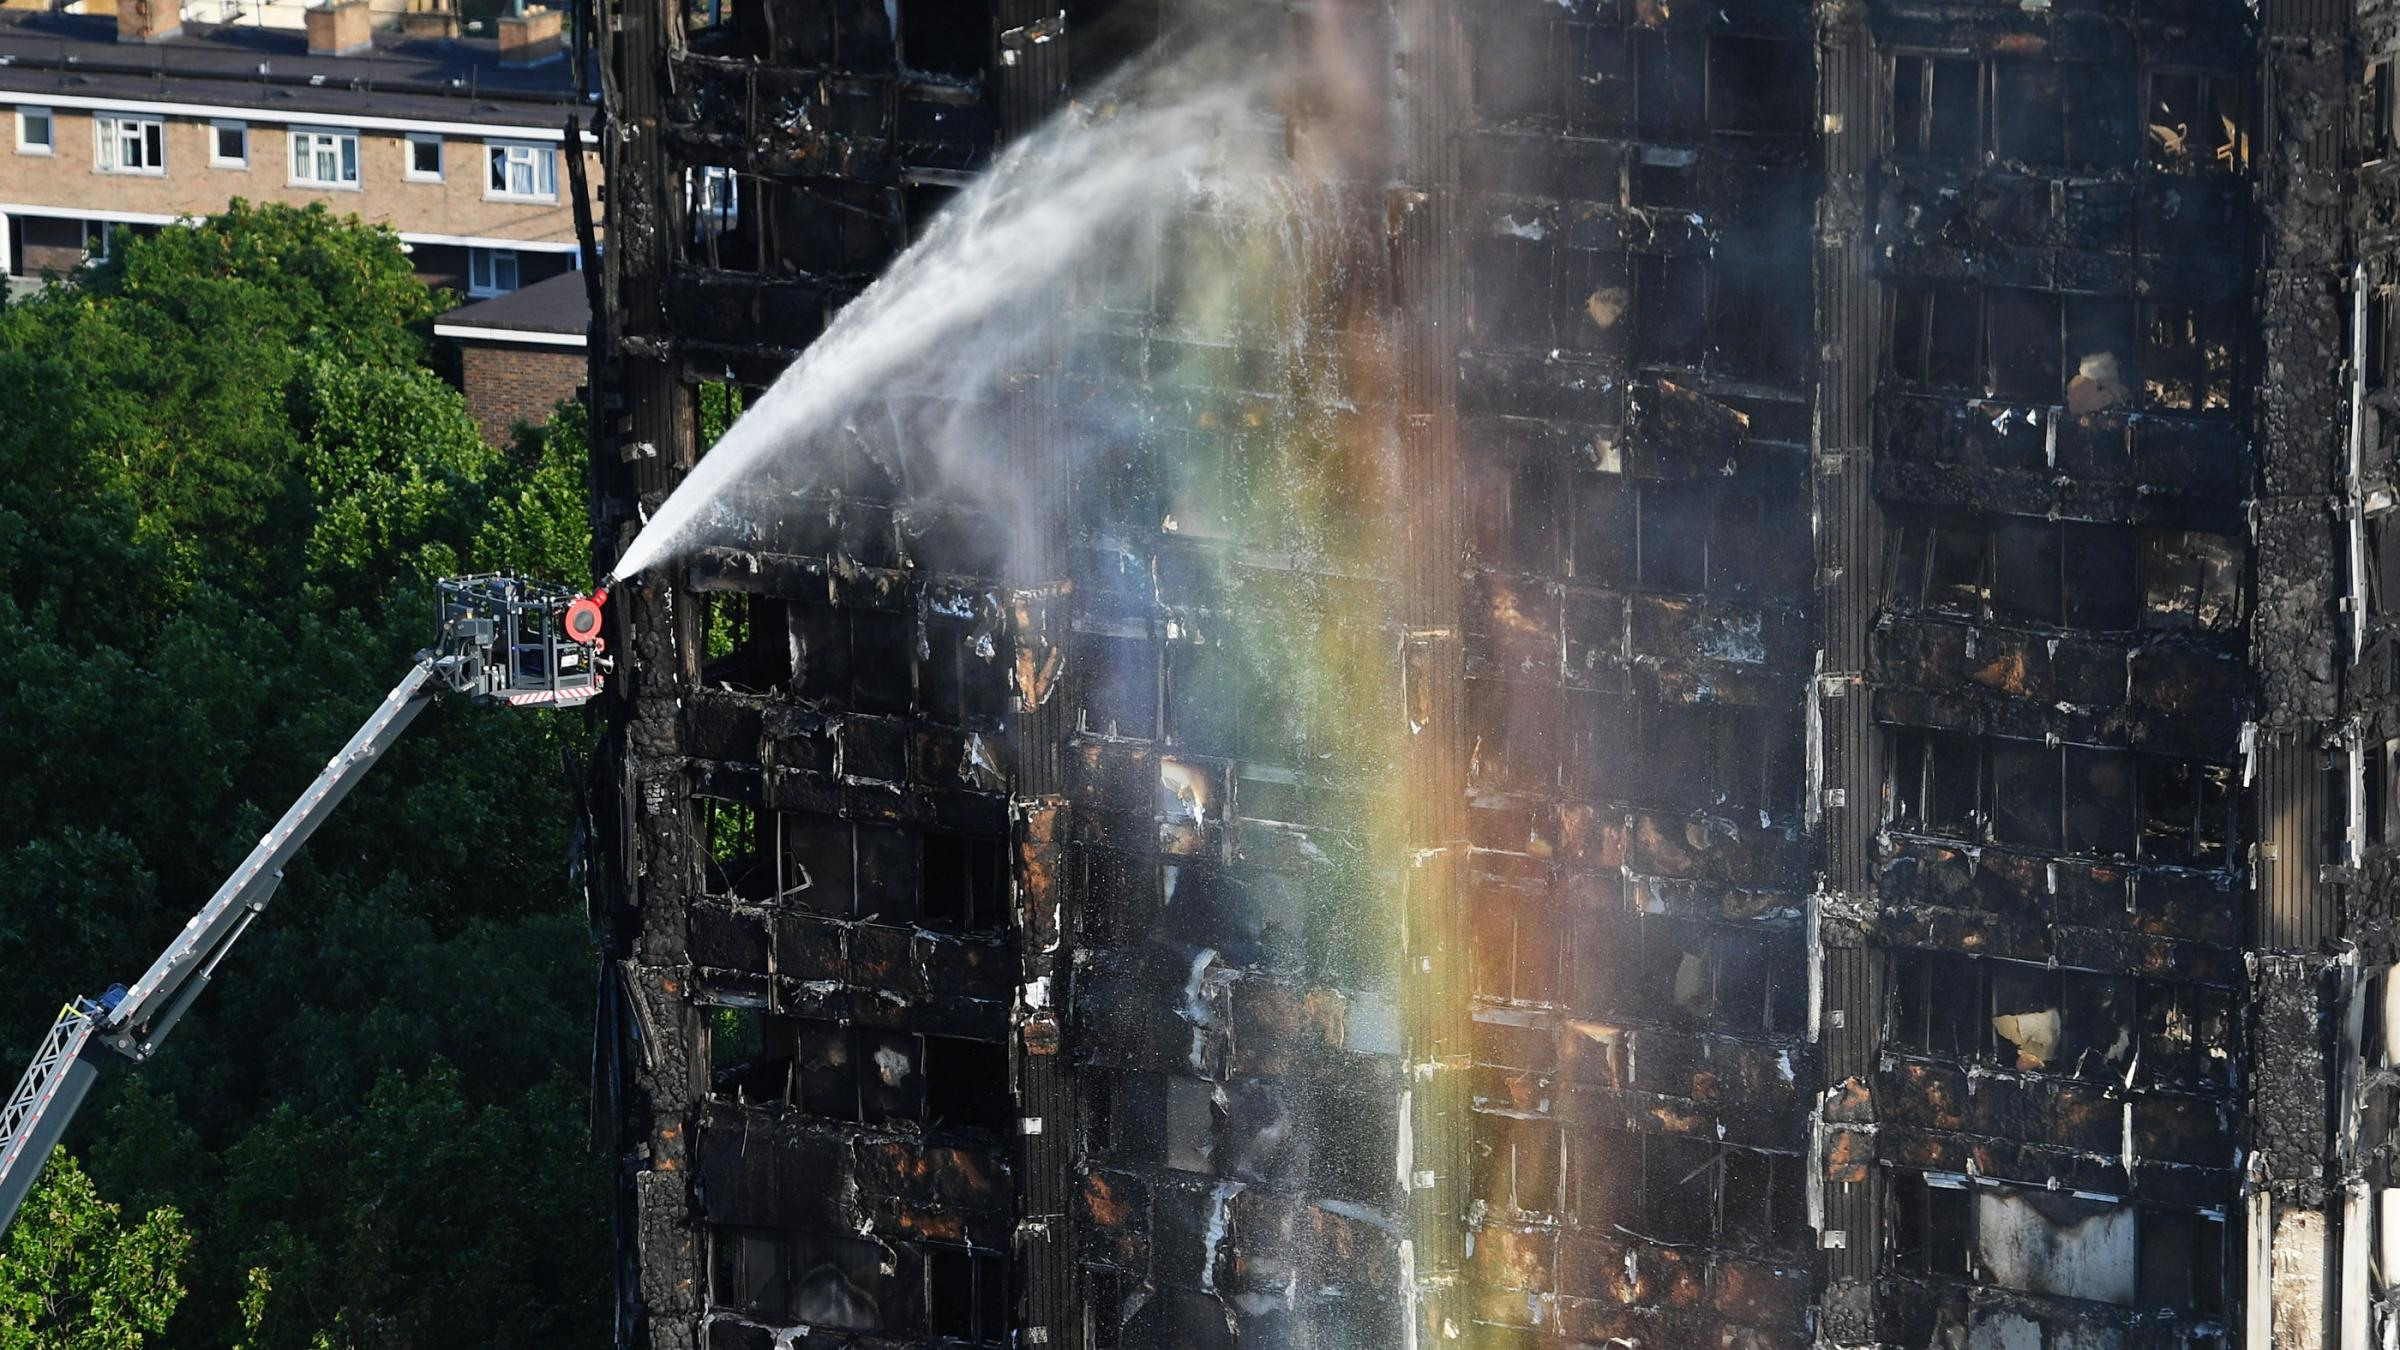 London fire: Firefighters remove bodies from gutted Grenfell Tower